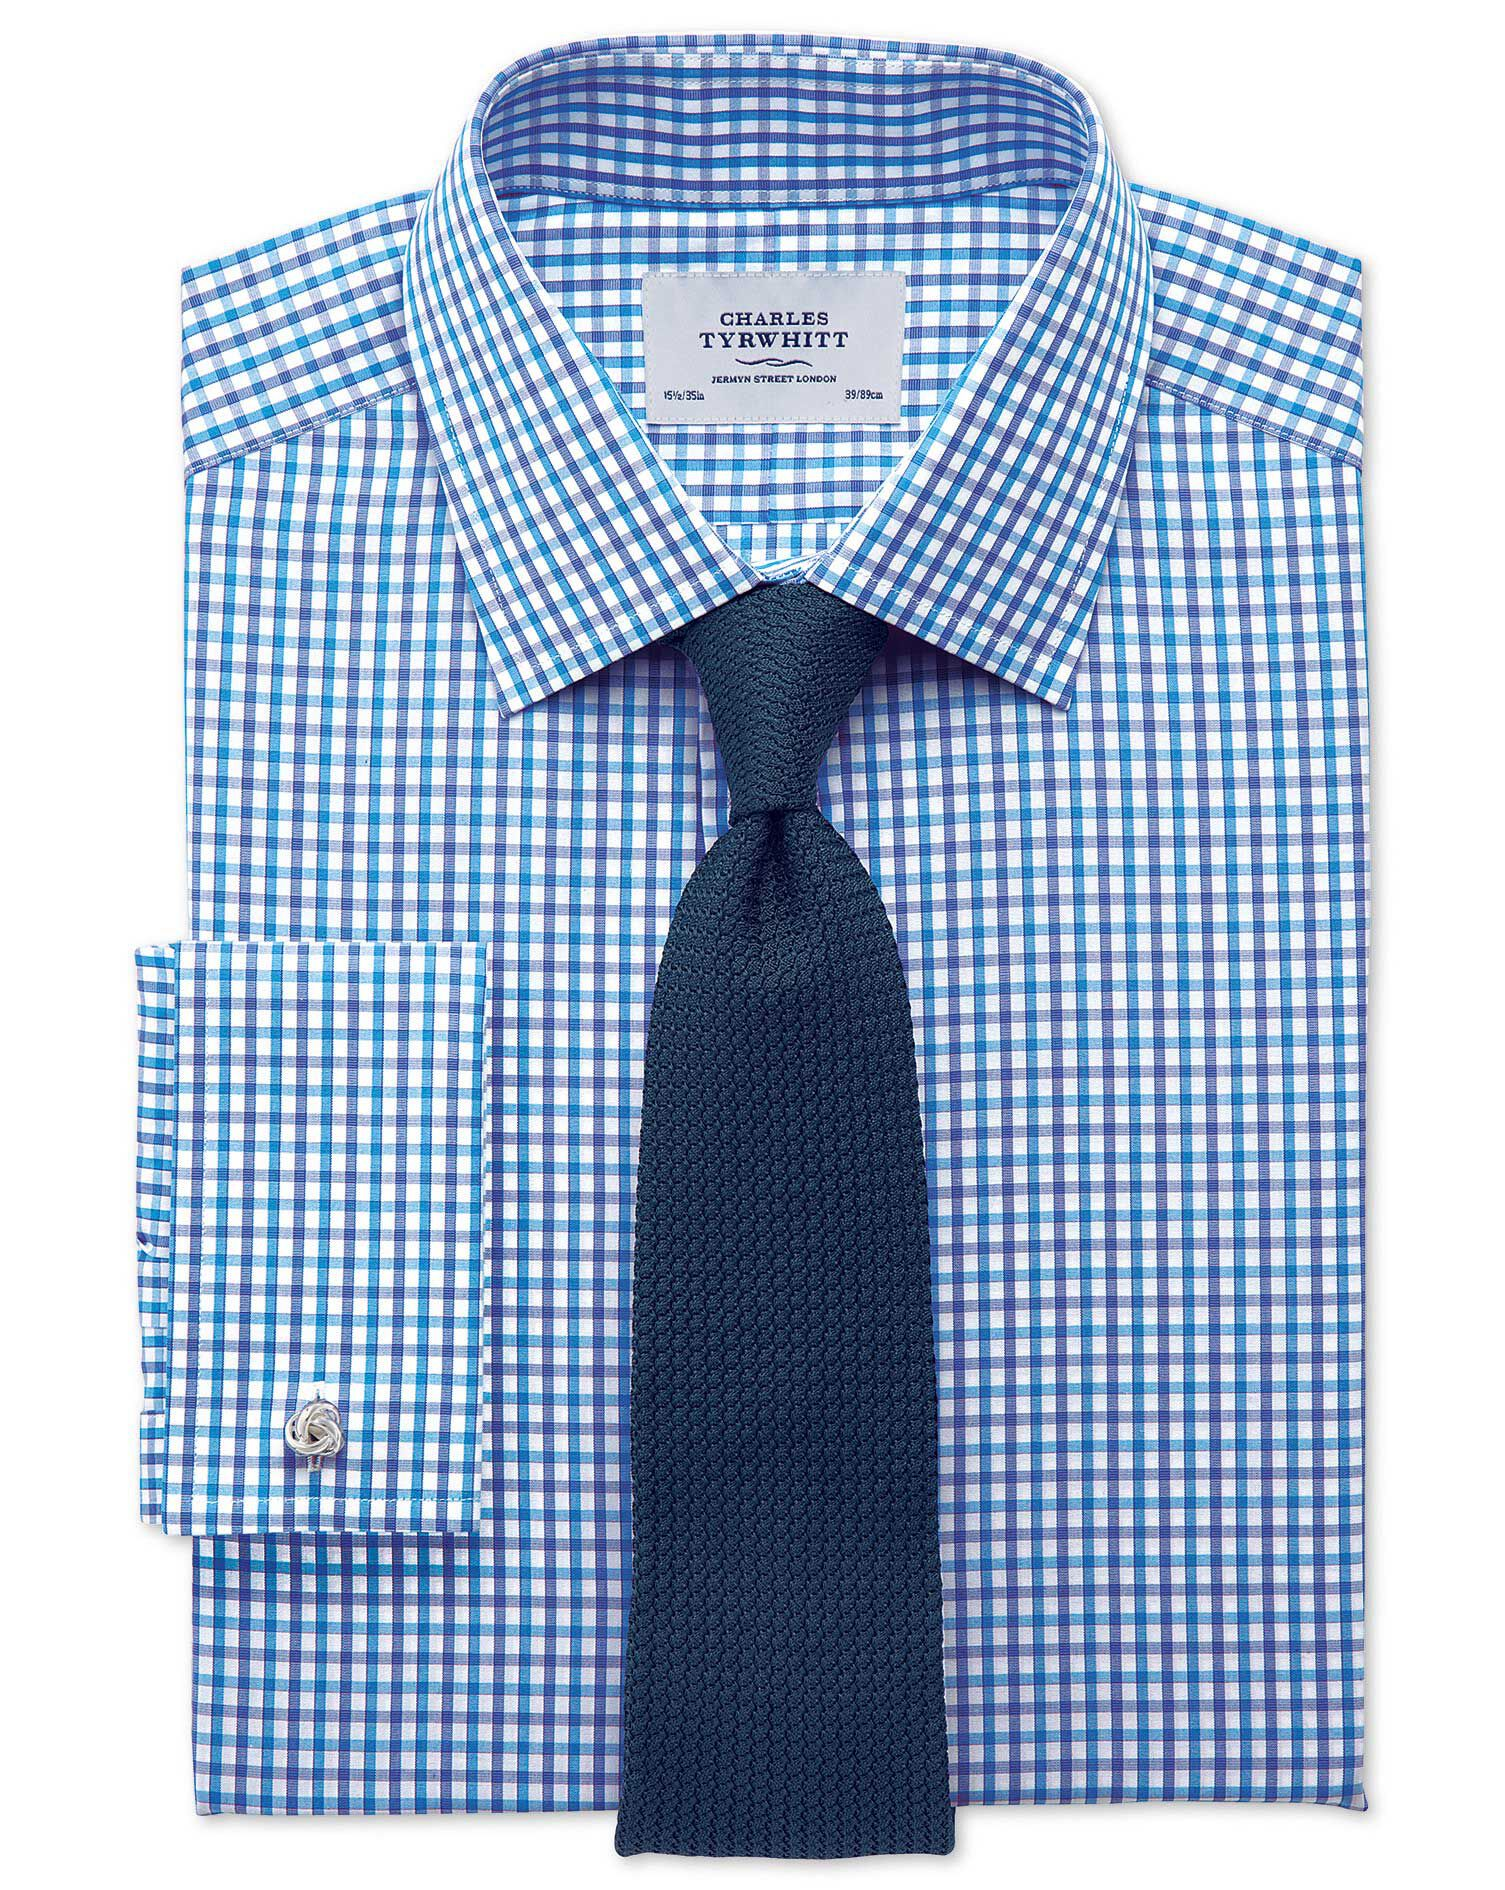 Extra Slim Fit Two Colour Check Blue Cotton Formal Shirt Double Cuff Size 15.5/34 by Charles Tyrwhit